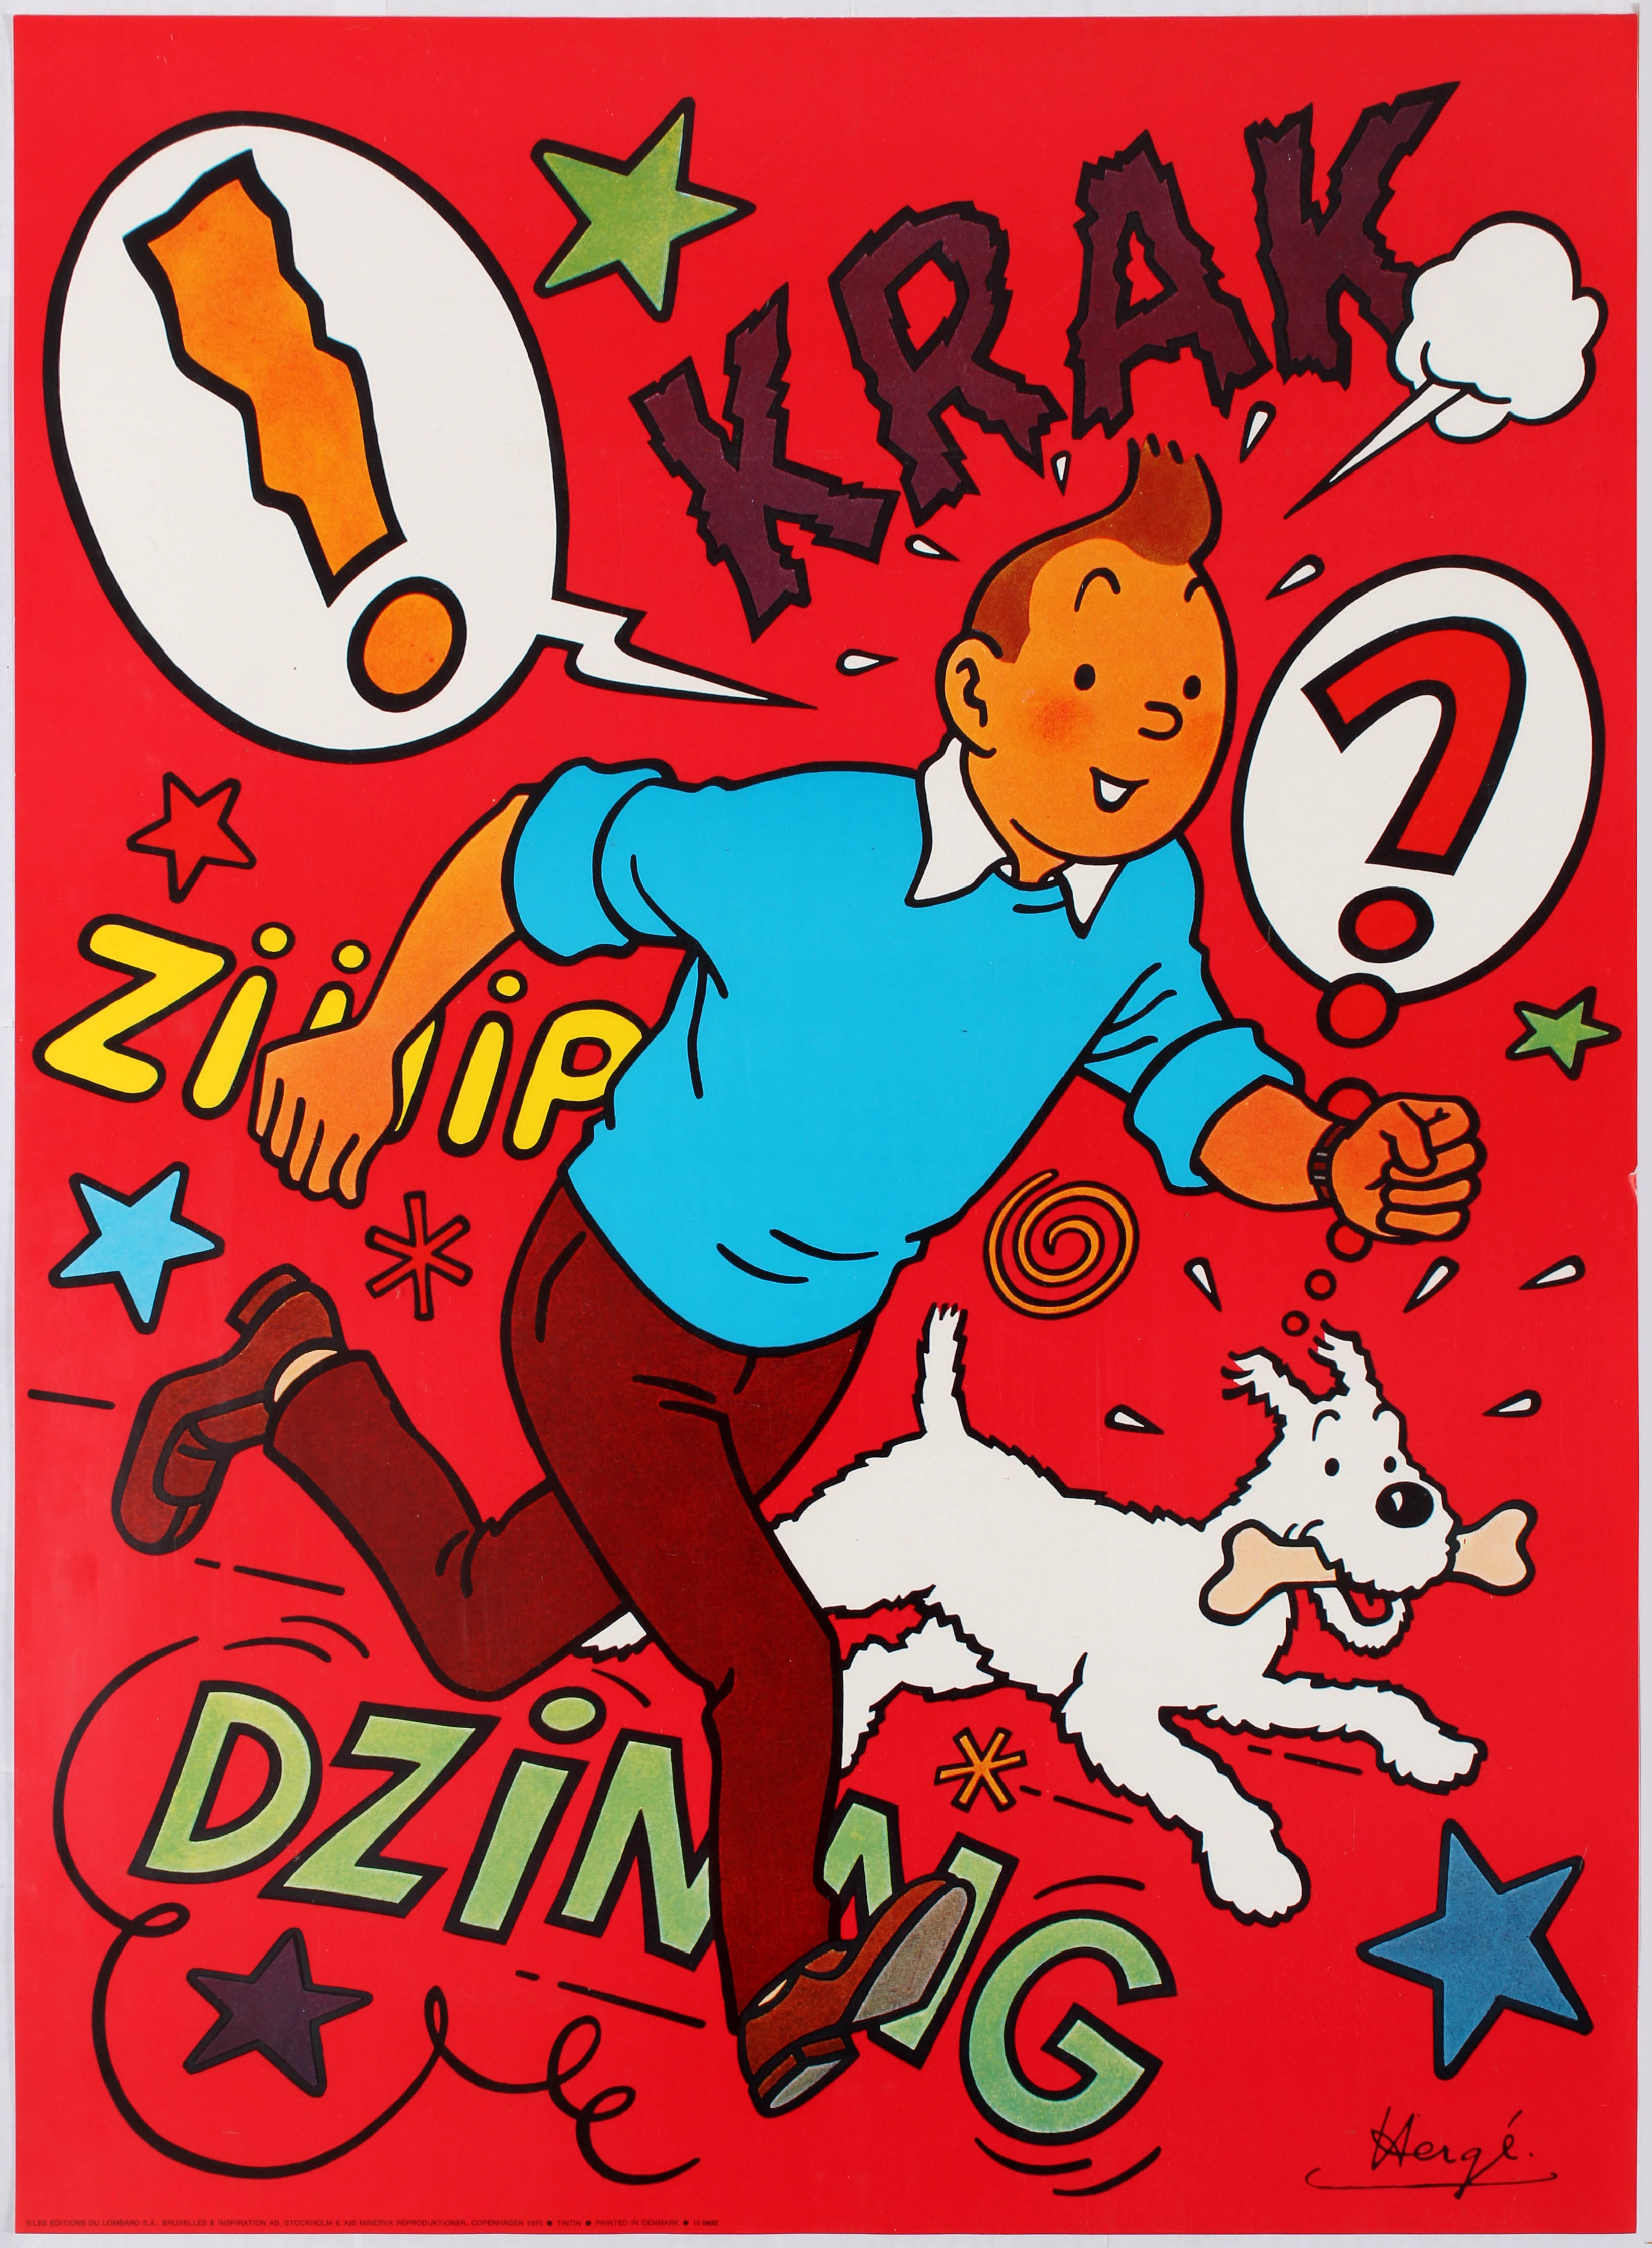 Lot 1707 - Advertising Poster Tintin